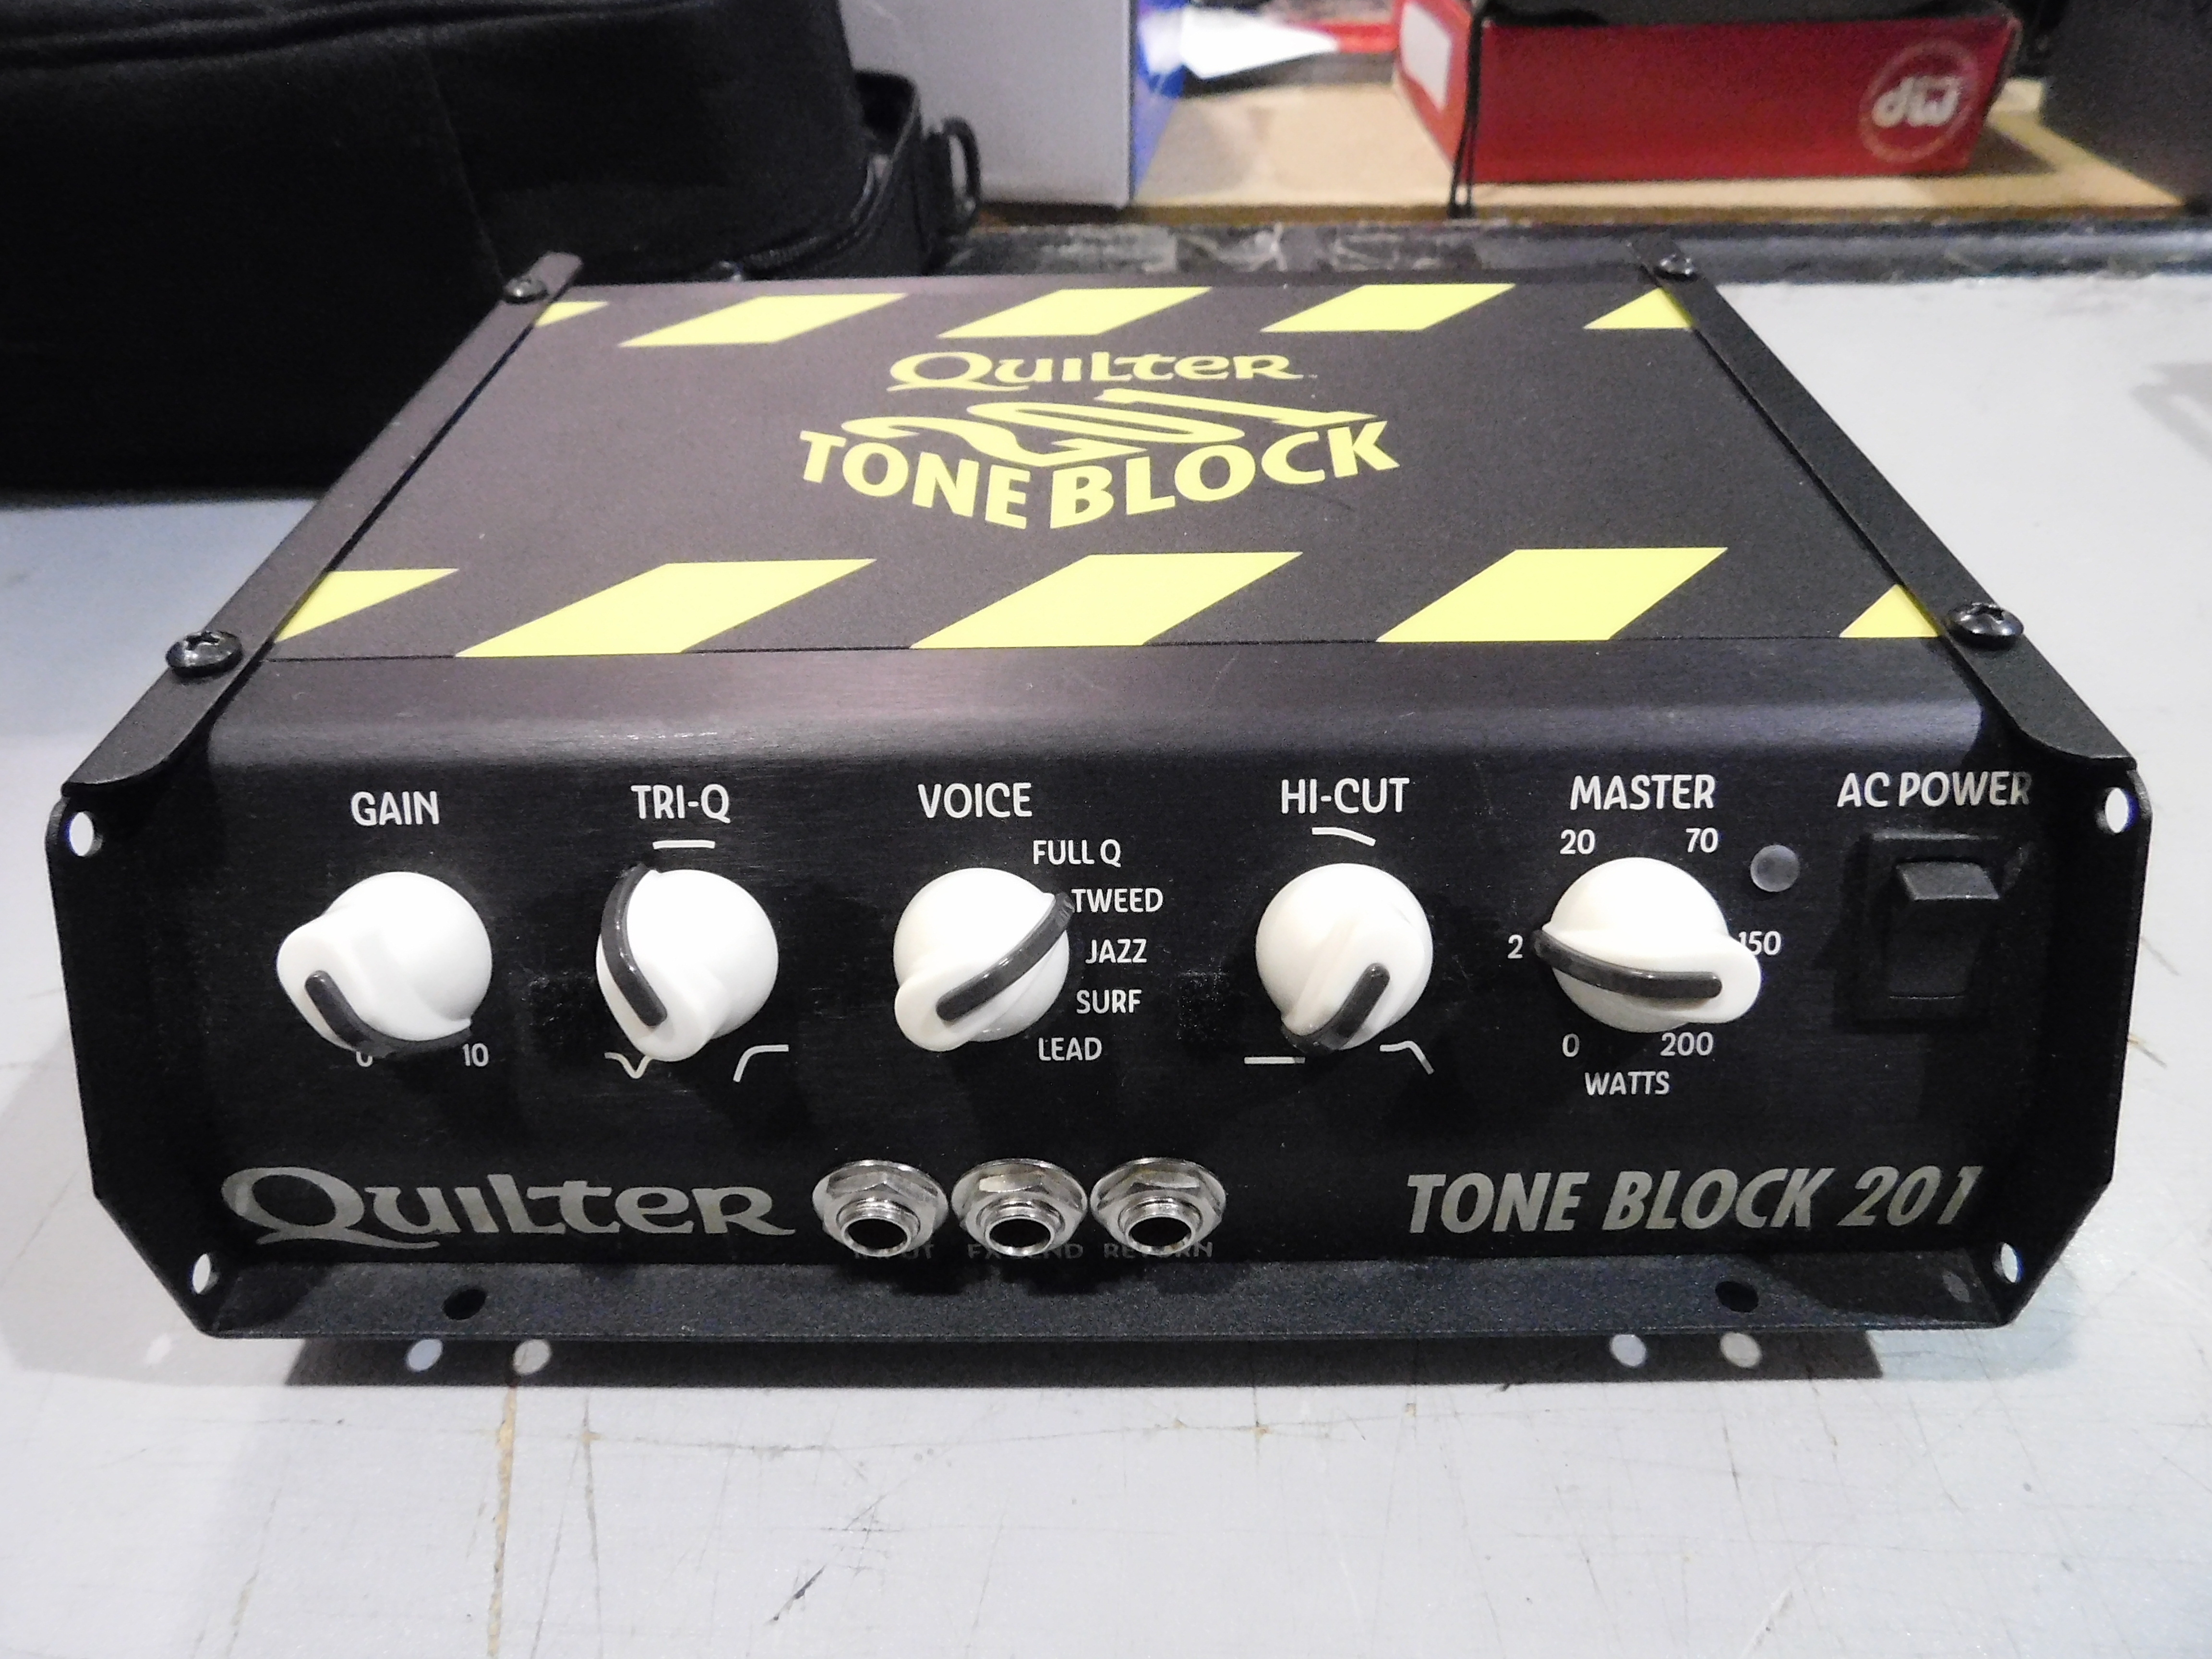 QUILTER LABS TONE BLOCK 201 TB201-HEAD 200W Guitar Amp Head with Bag!